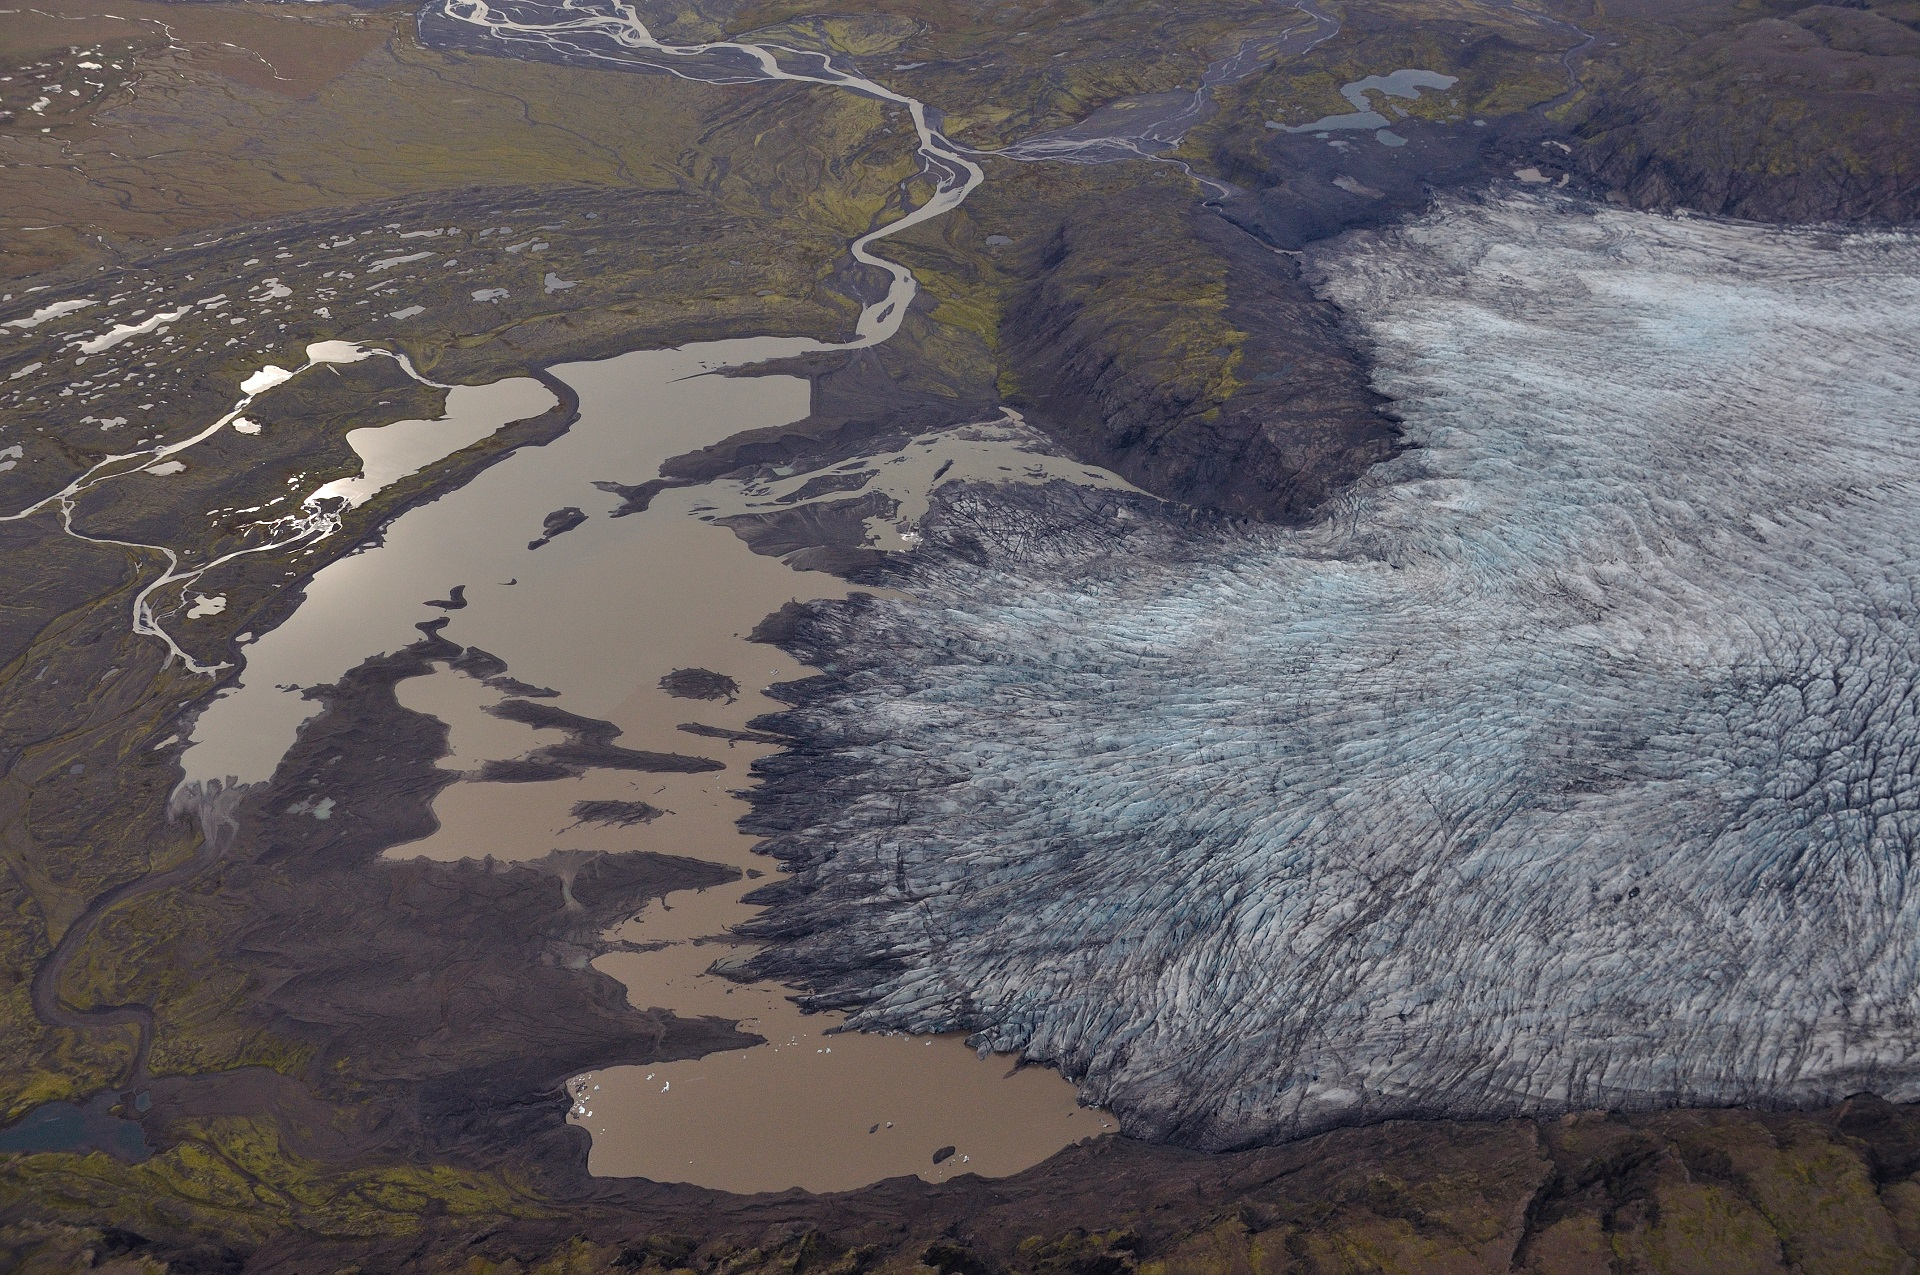 Fláajökull outlet glacier with a few separate lagoons and another elongated lagoon between the glacier moraine and the terminus. Photo: Snævarr Guðmundsson, September 13th 2014.